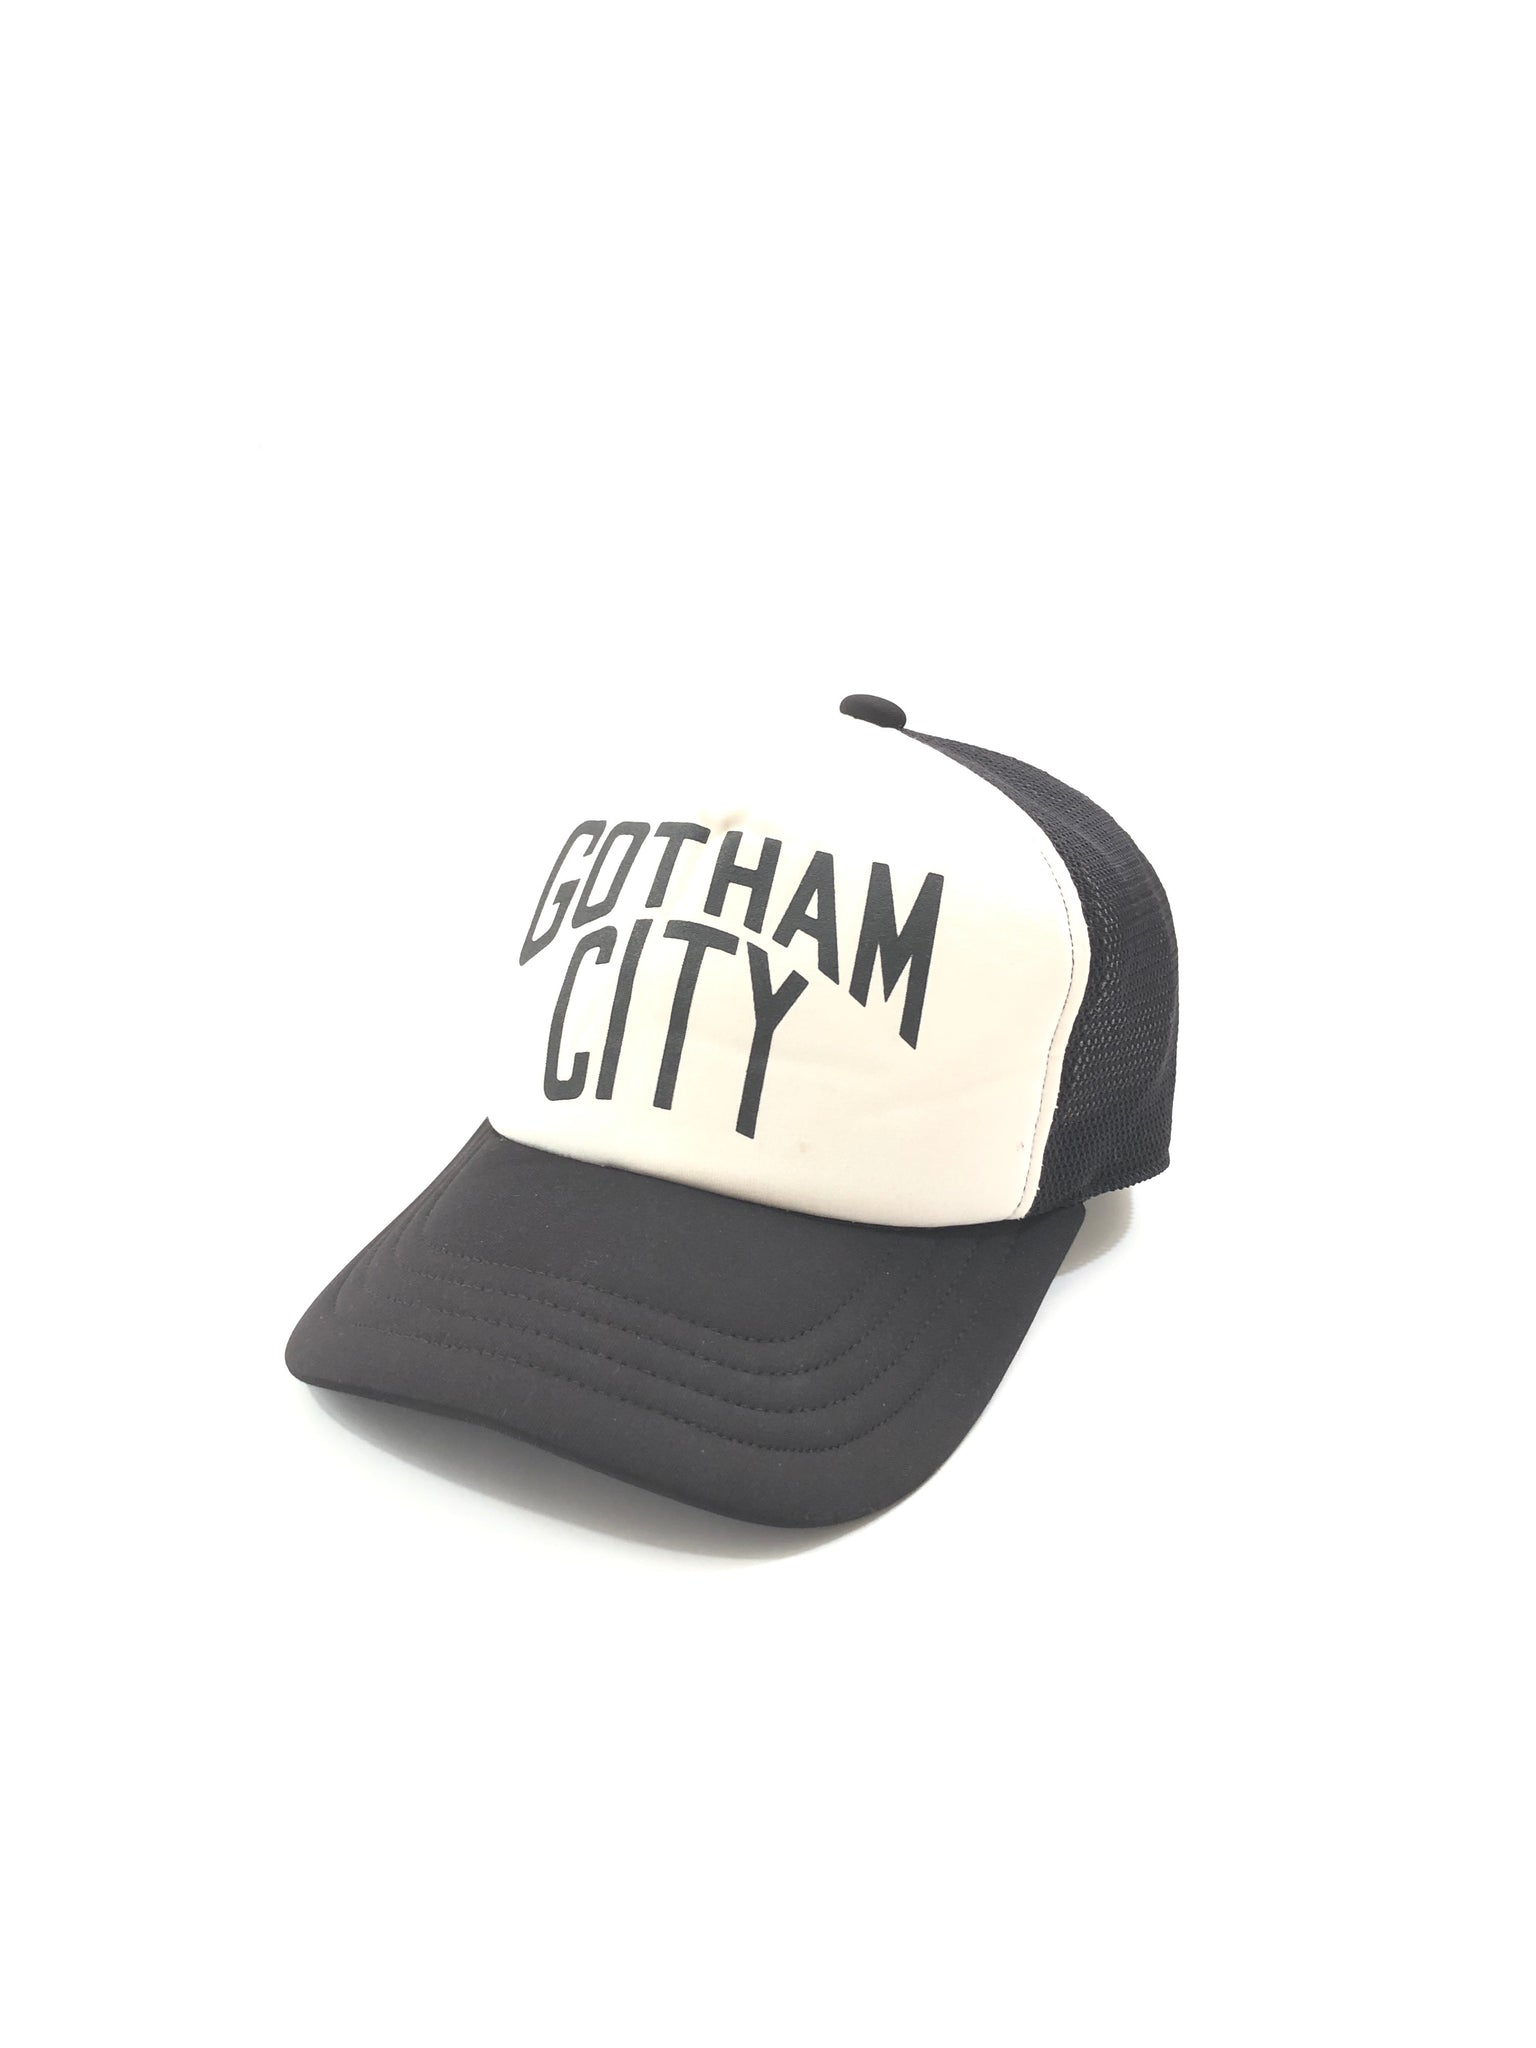 Number Nine 'Gotham City' Trucker Hat